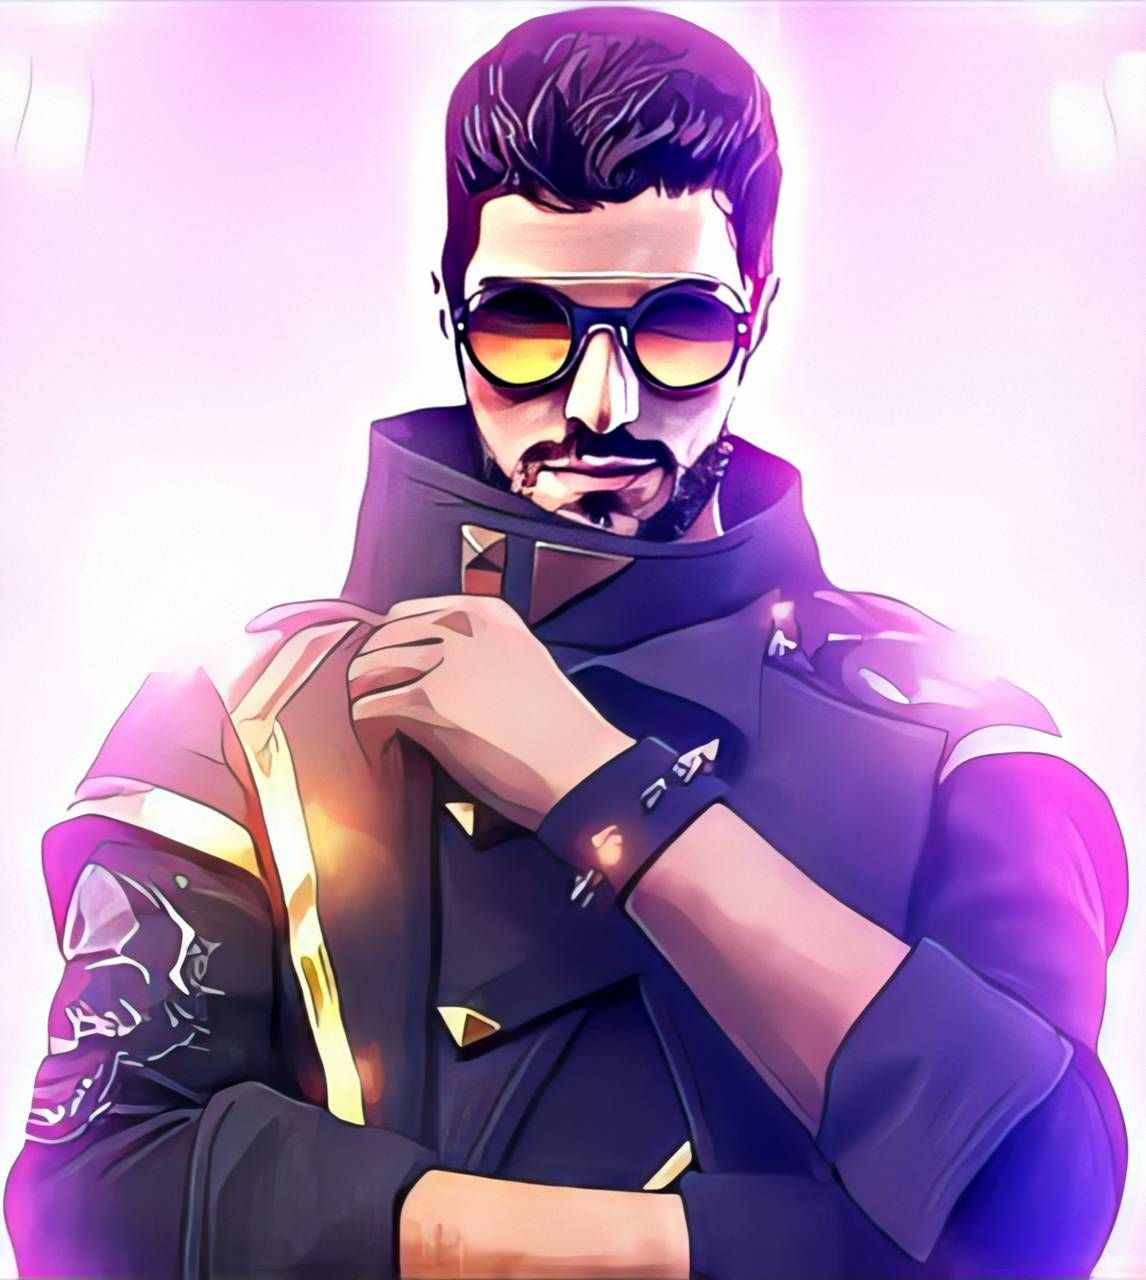 Download Dj Alok Free Fire Wallpaper By F4isk4 91 Free On Zedge Now Browse M Download Cute Wallpapers Cute Panda Wallpaper Animated Wallpapers For Mobile Free fire wallpaper hd download alok